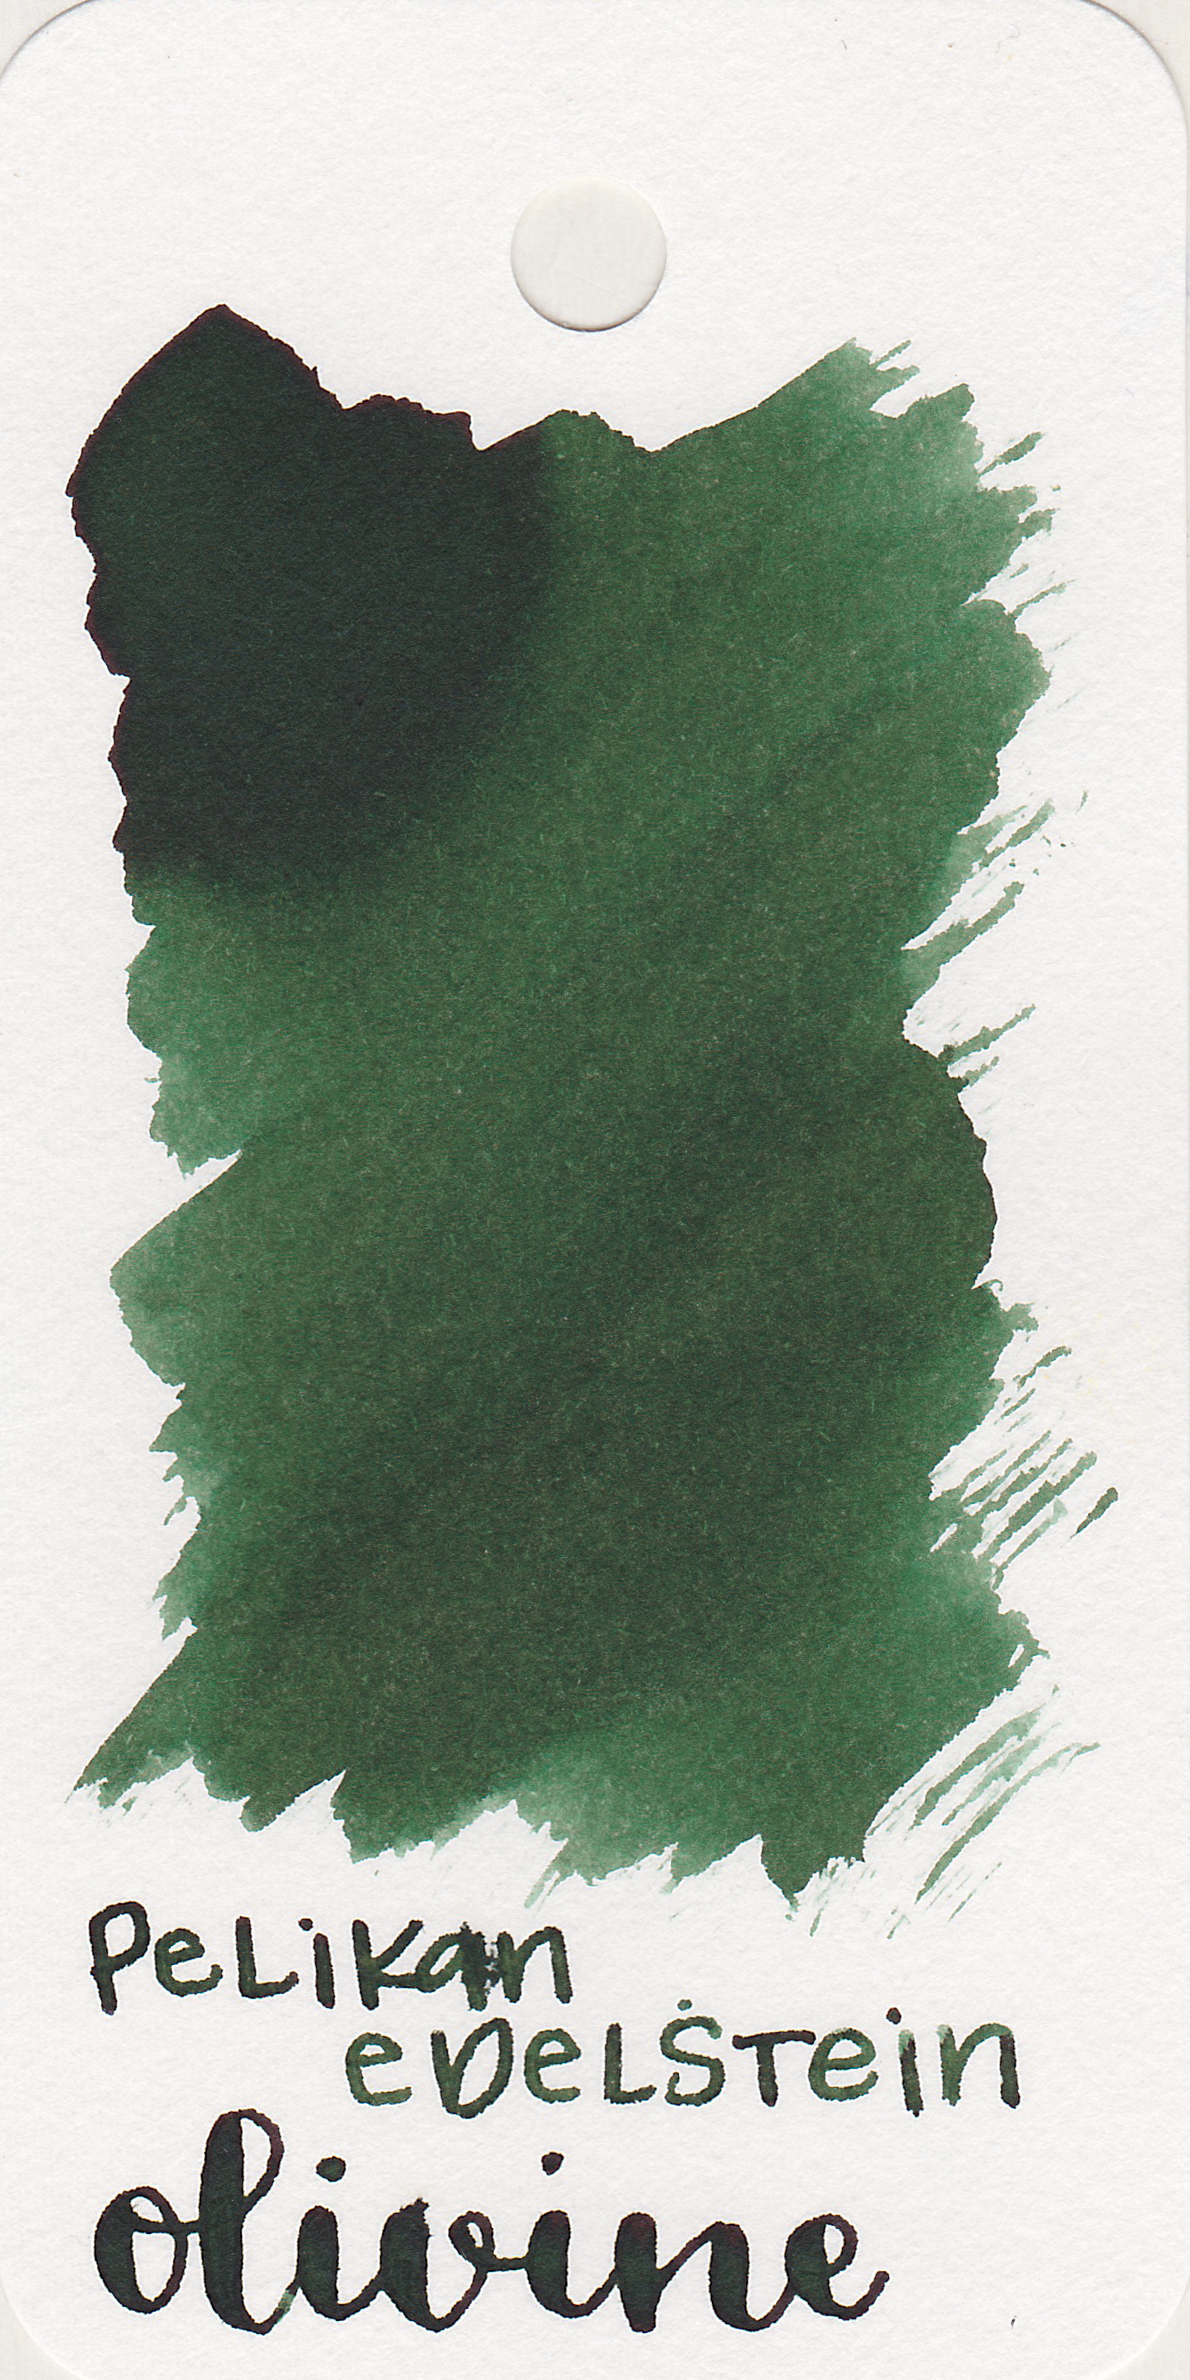 The color: - Olivine is a dark green. It's not quite an olive green, but not quite a forest green either.